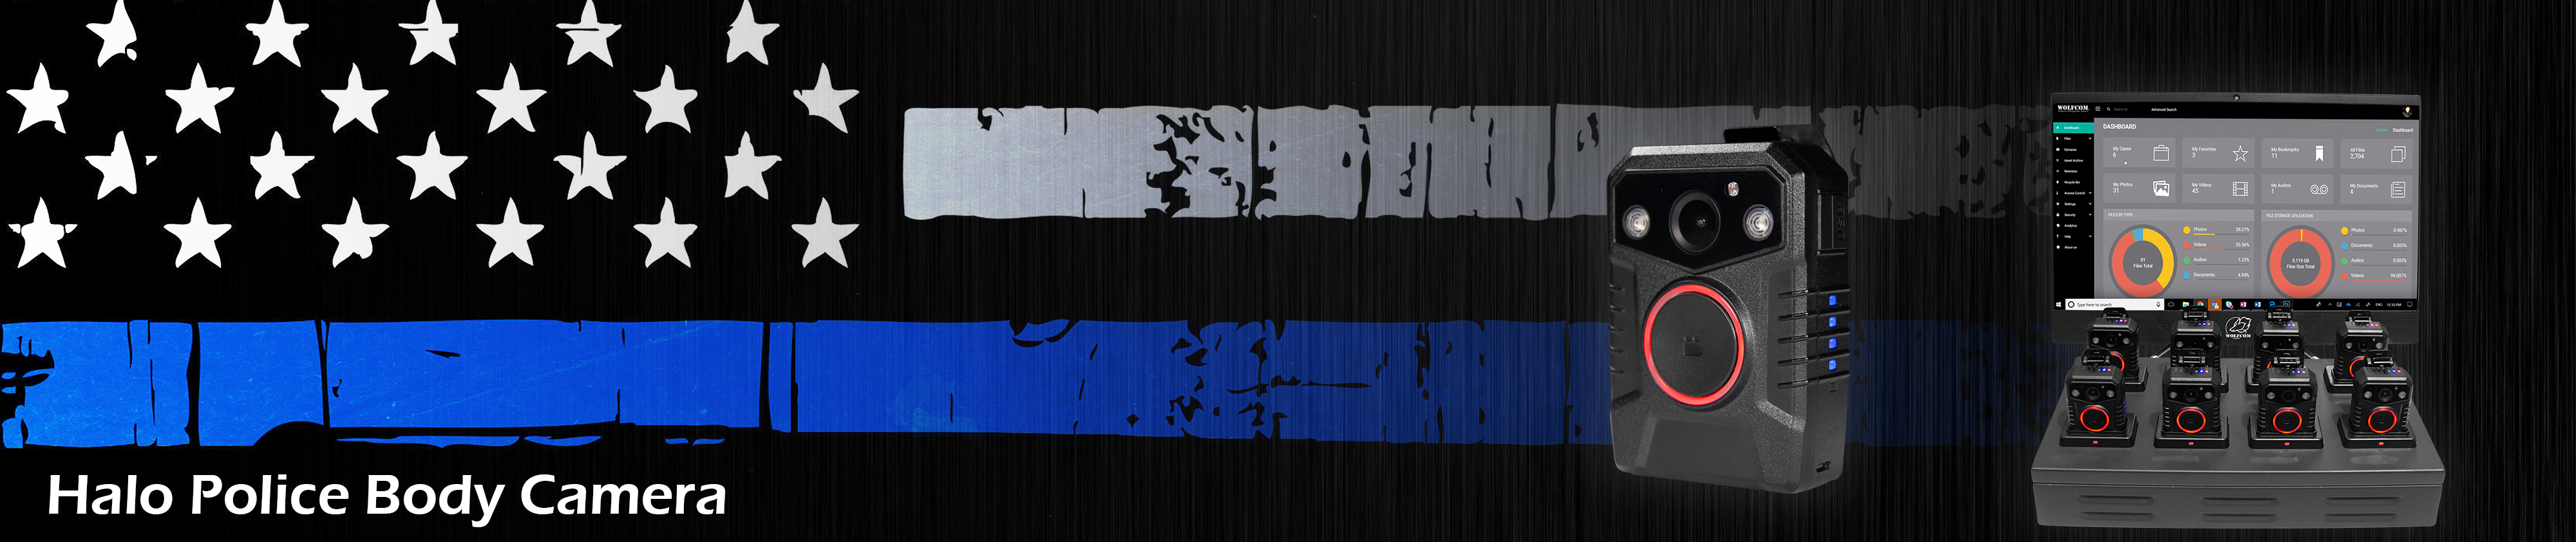 top banner for halo police body camera page on wolfcom usa website